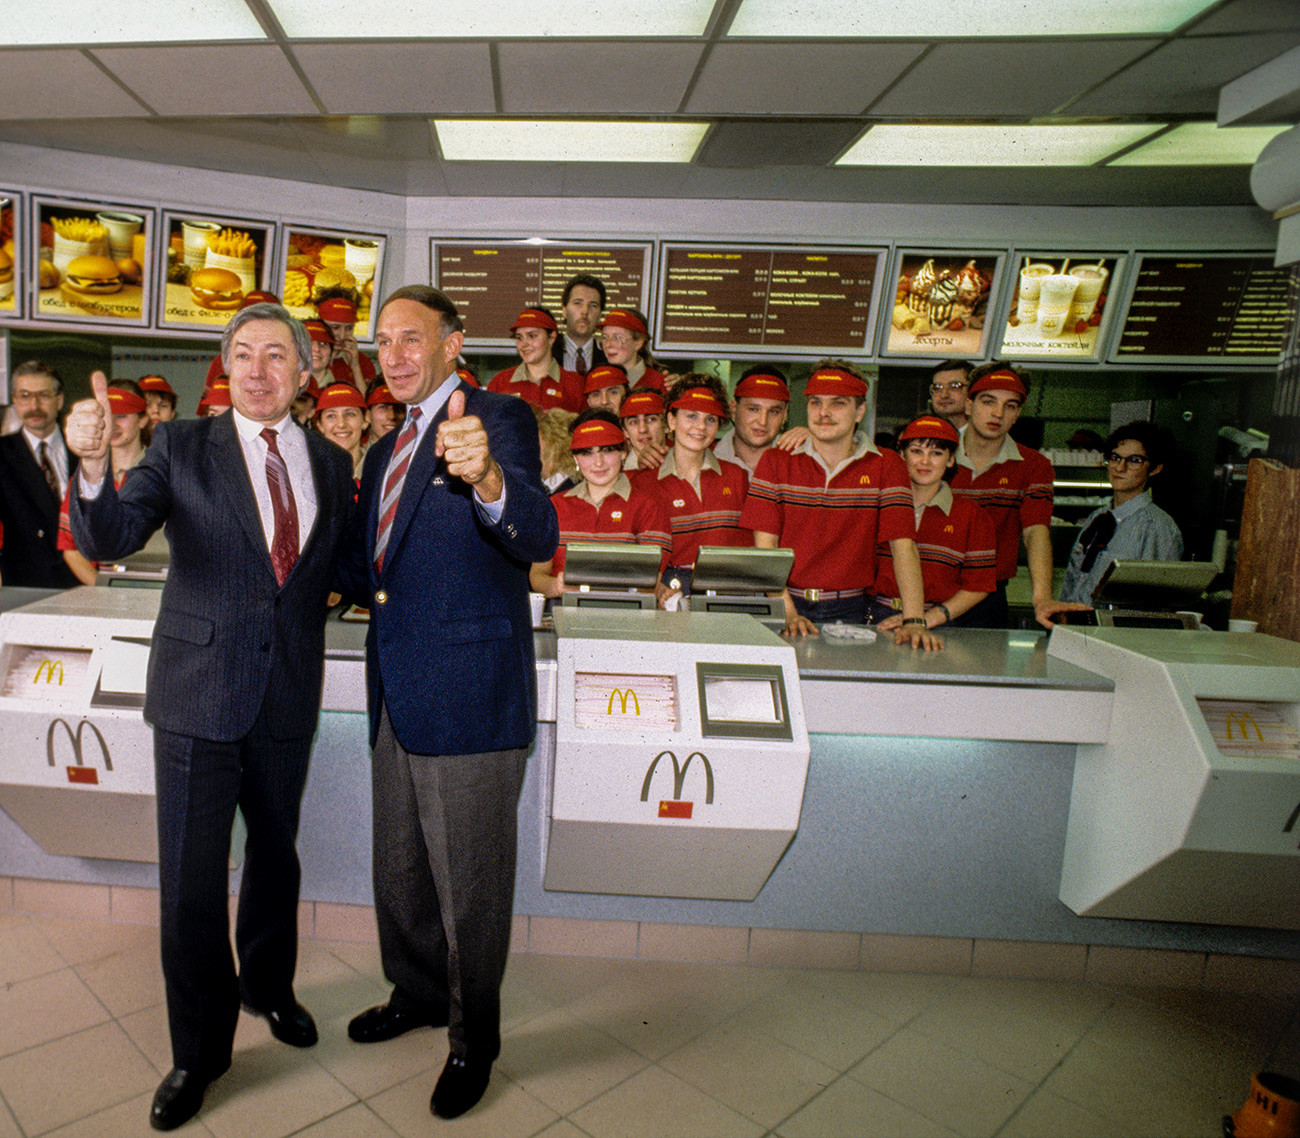 Vladimir Malyshkov (left), Director of joint Soviet-Canadian restaurant McDonald's, Chairman of the Board, and George A. Cohon, Deputy Director of McDonald's restaurant.